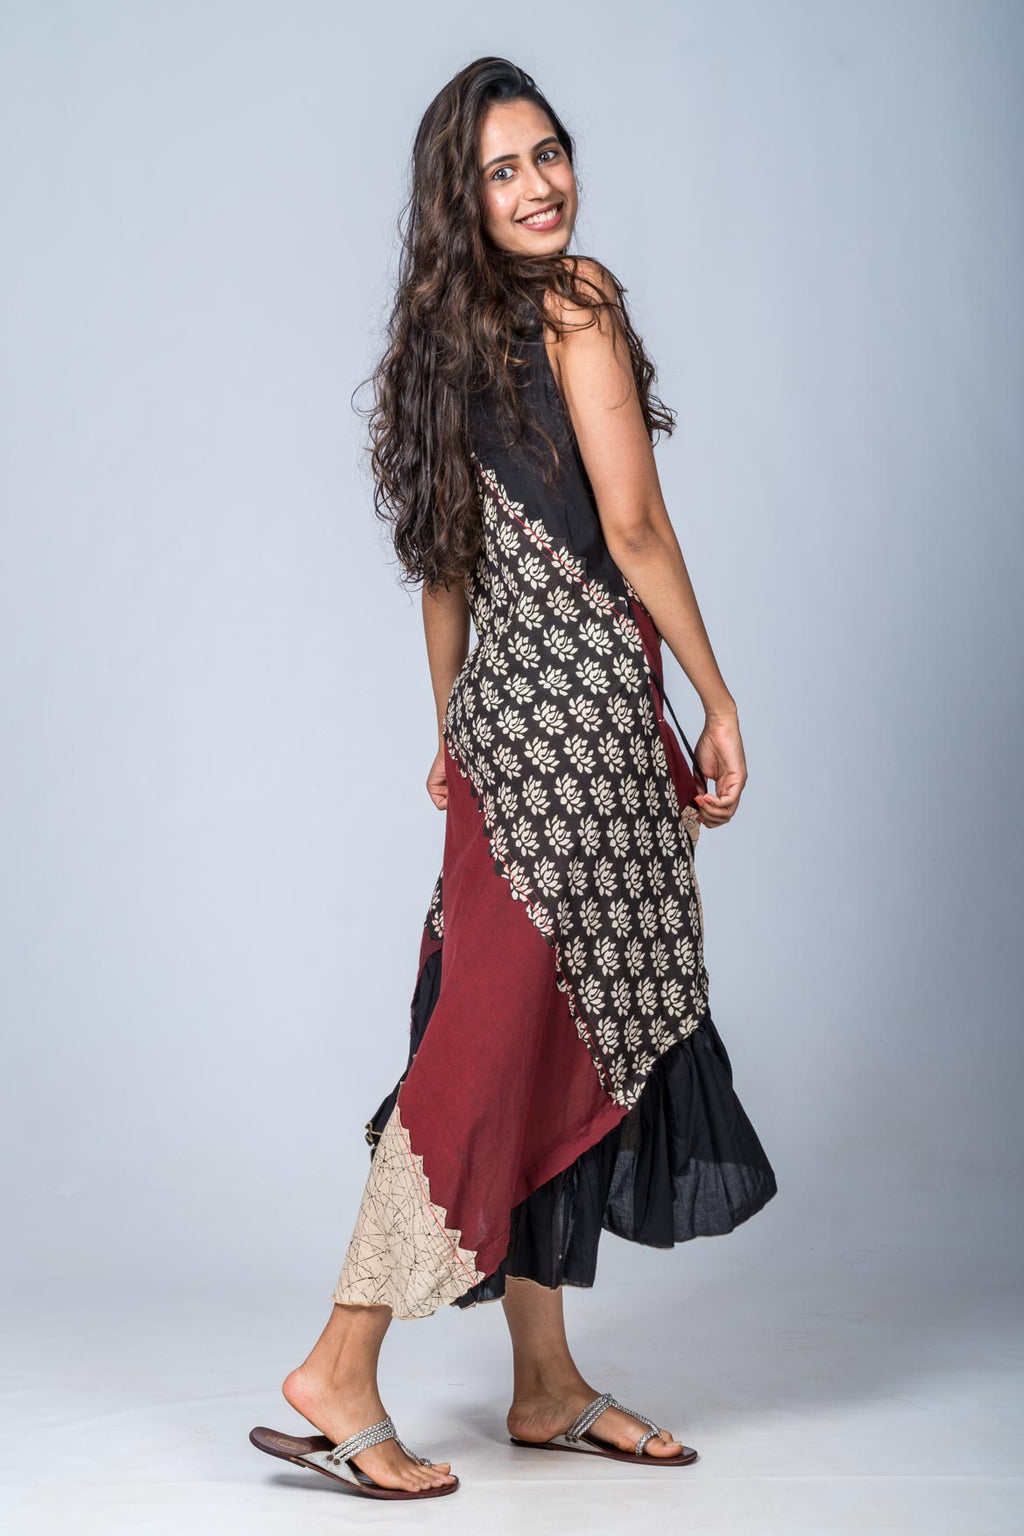 Aarnavi-Upcycled Organic Cotton Maroon Black  Dress